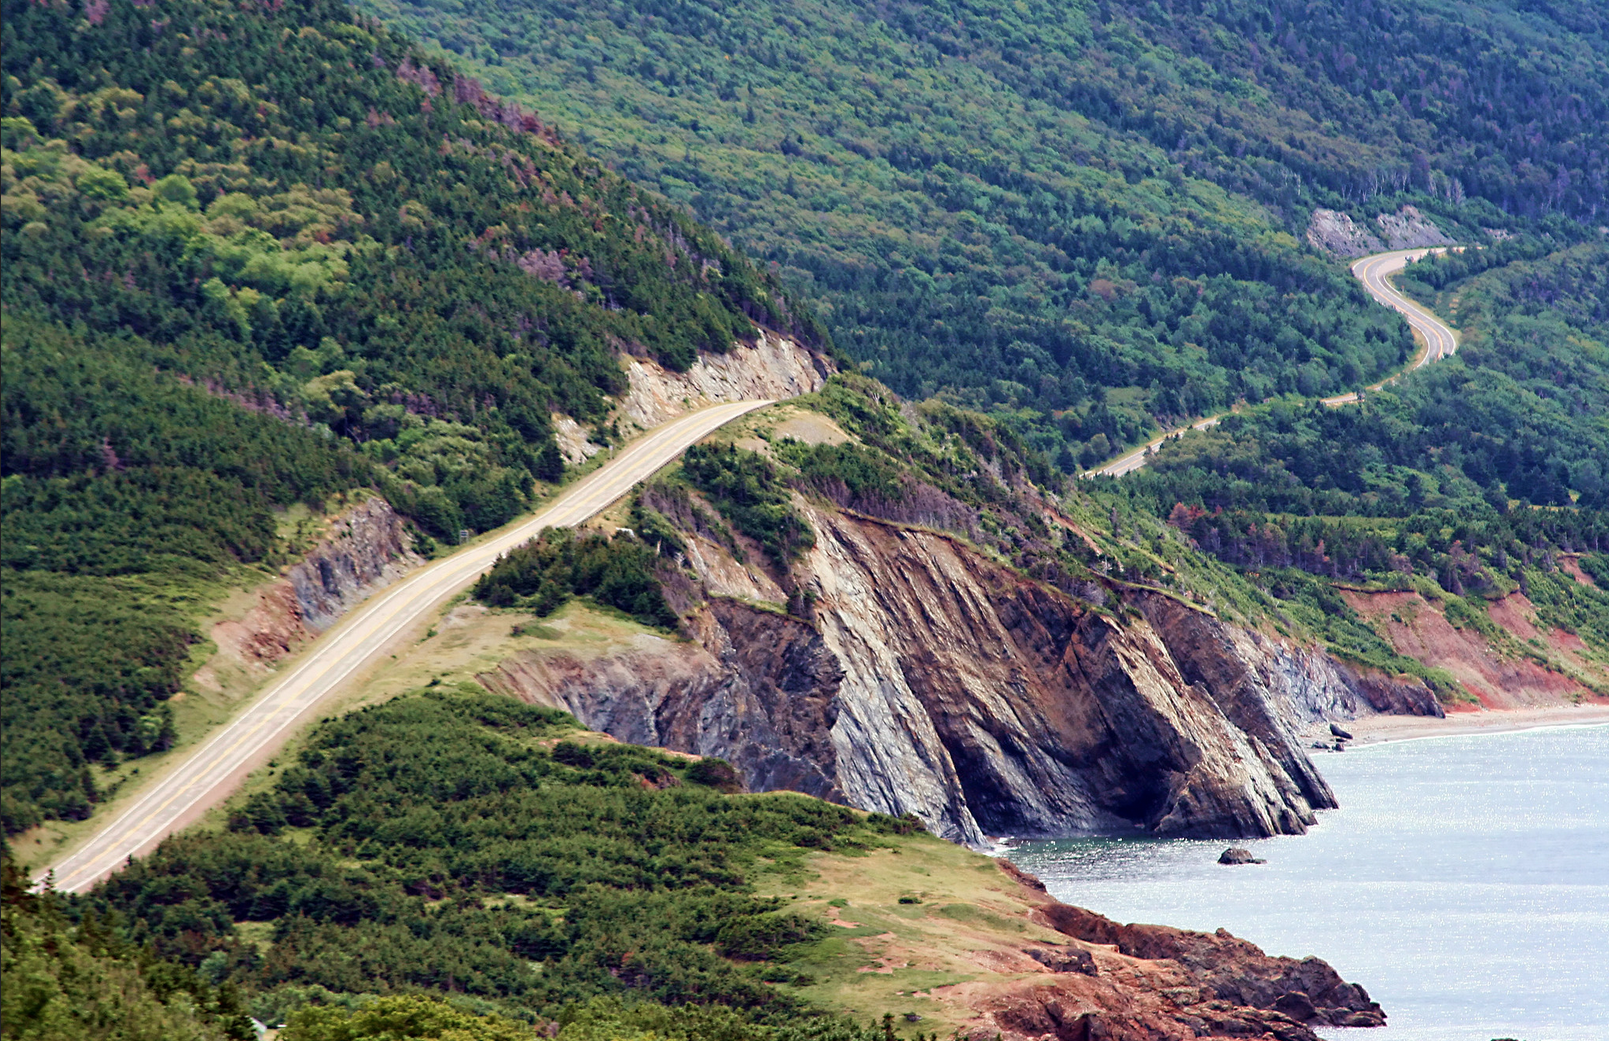 Home of the Cabot Trail